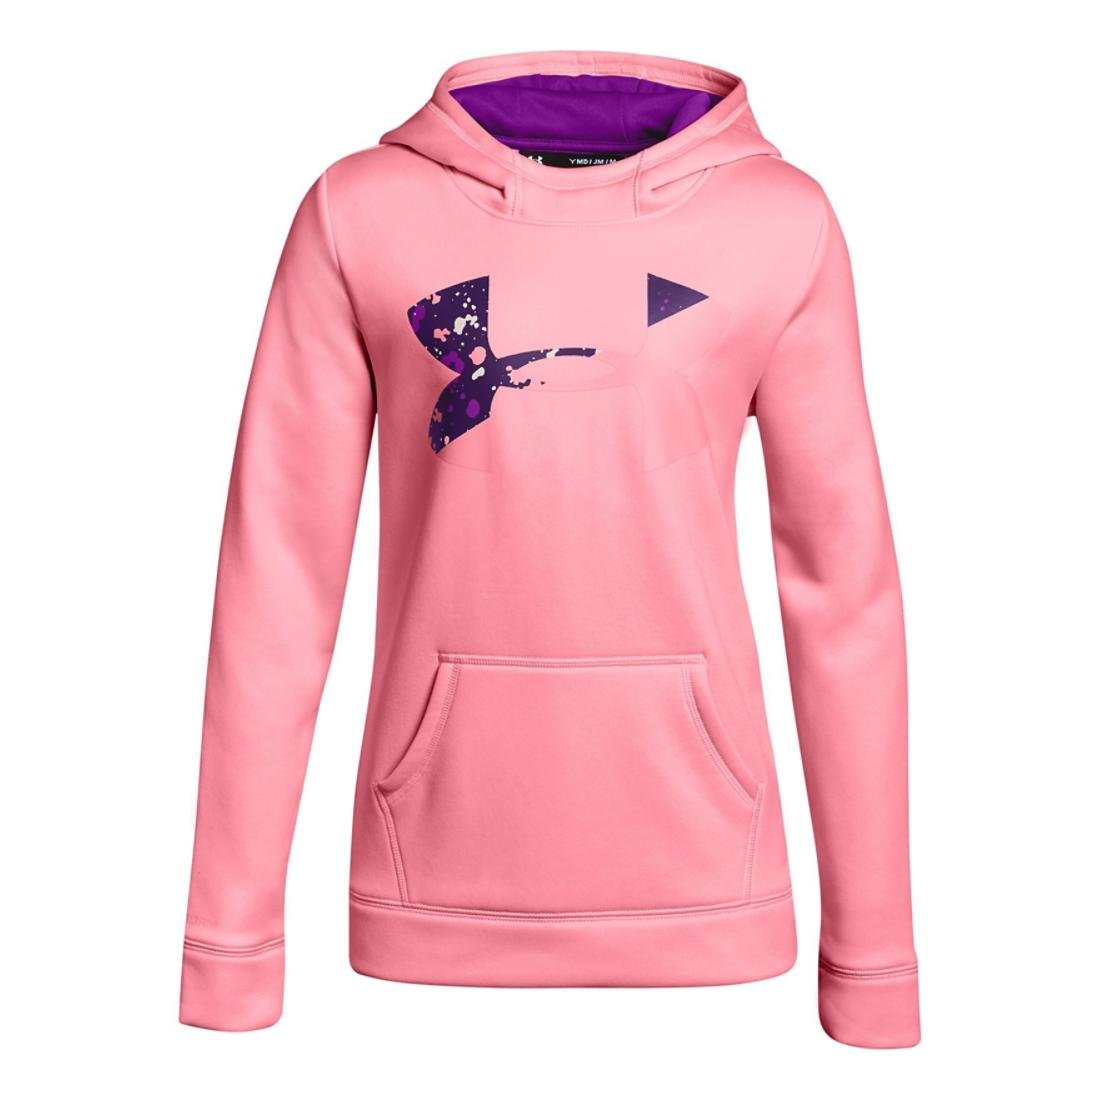 Under Armour Kids Girl's Armour Fleece Big Logo Hoodie (Big Kids) Pop Pink/Indulge/Purple Rave X-Small